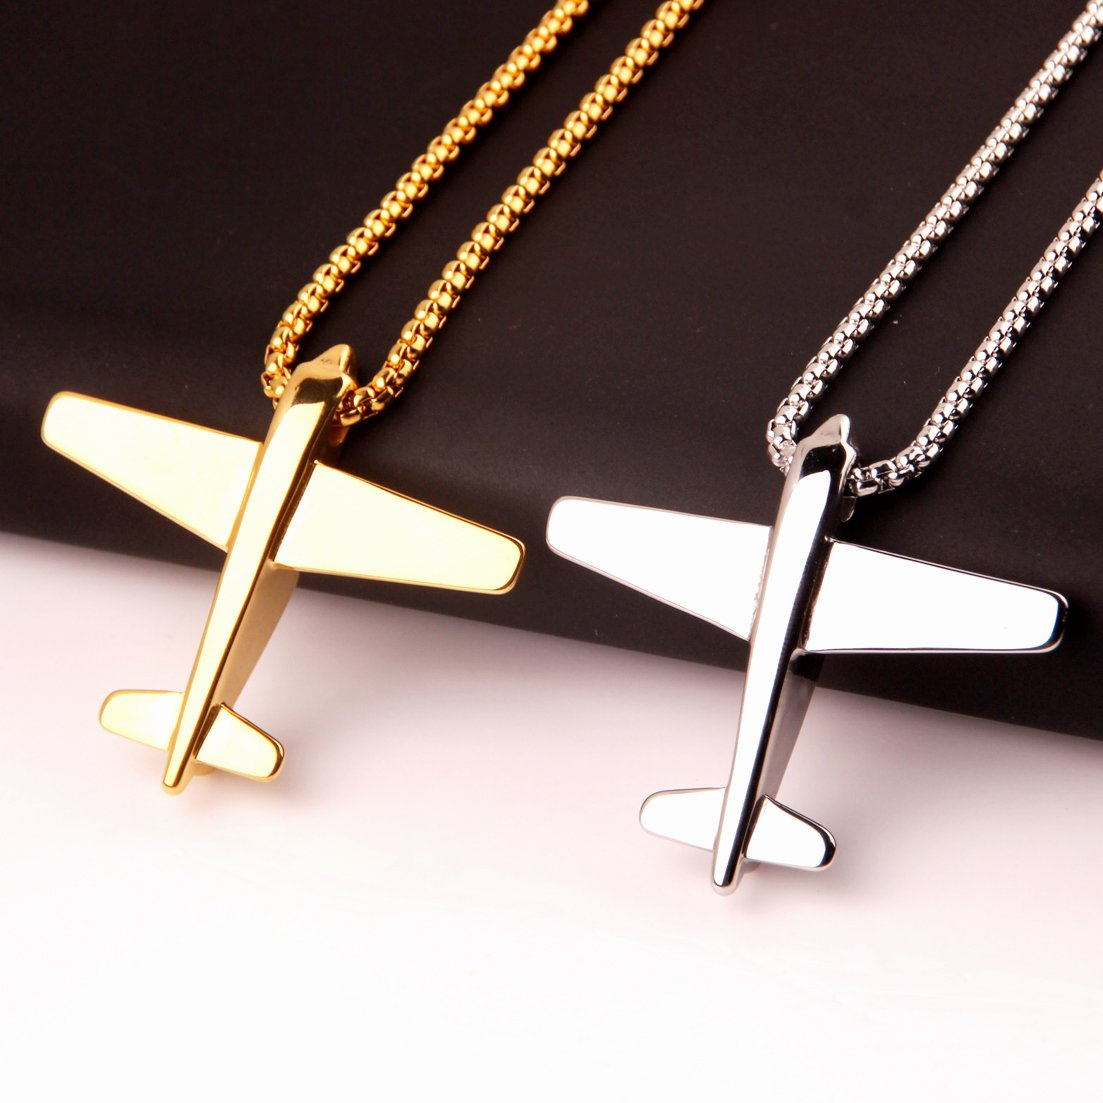 Jewelry Kingdom 1 Fashion Silver Gold Black Stainless Steel Aircraft Pendant Mens Necklace